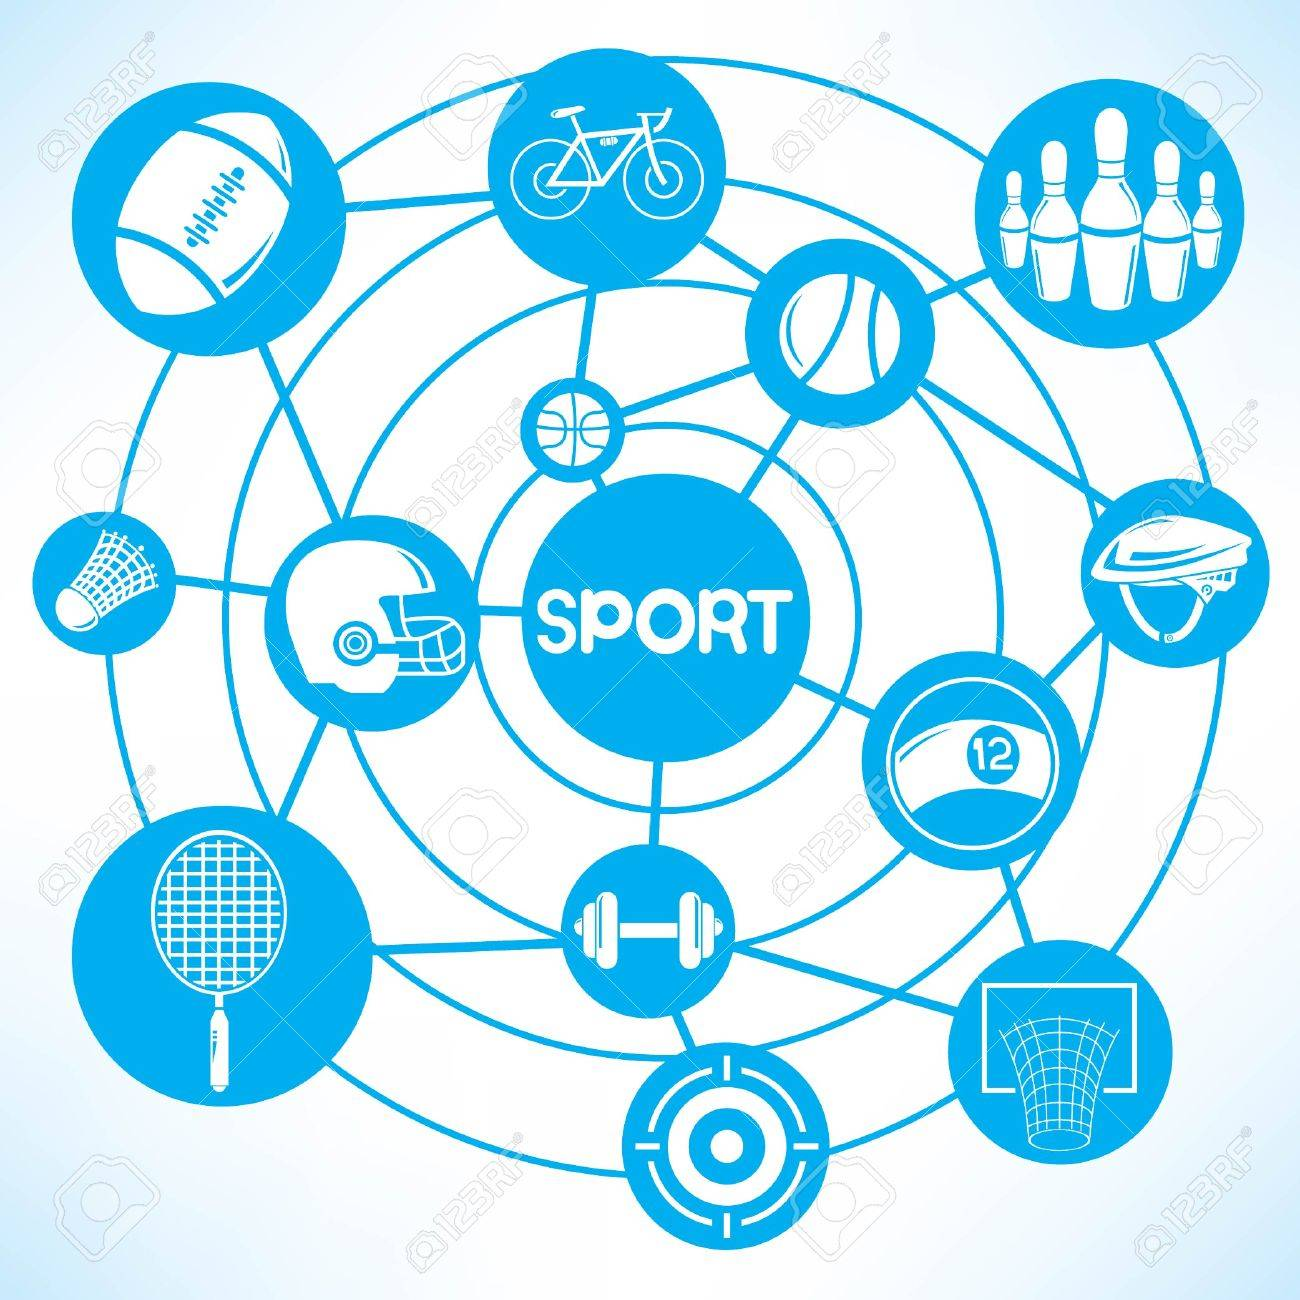 1300x1300 Sport Network, Blue Connecting Network Diagram Royalty Free